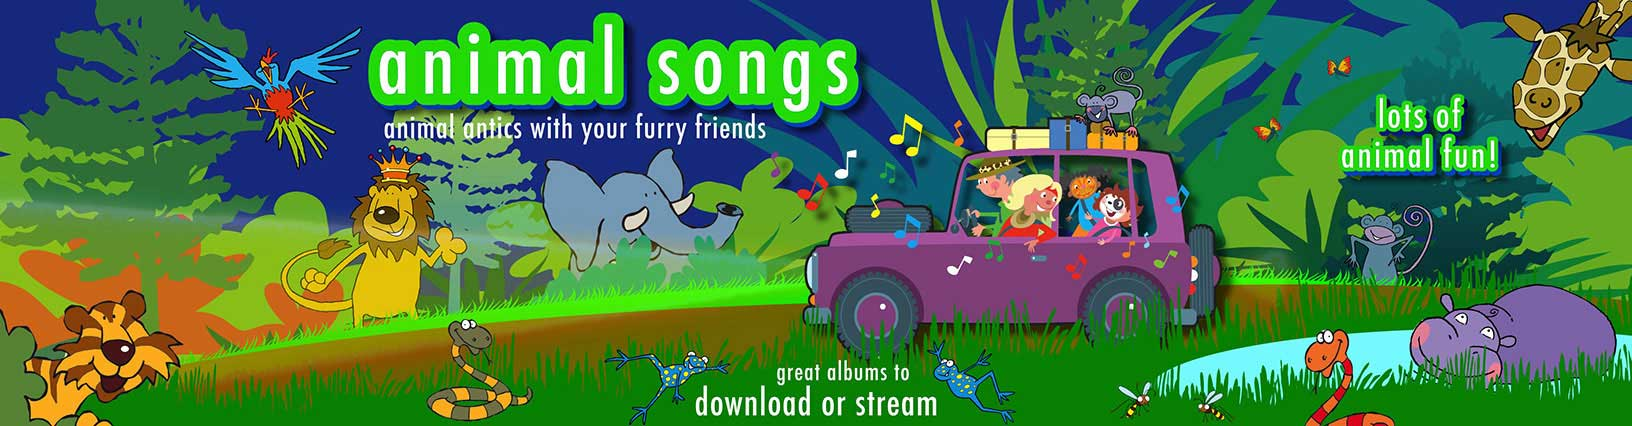 Animal Songs Albums